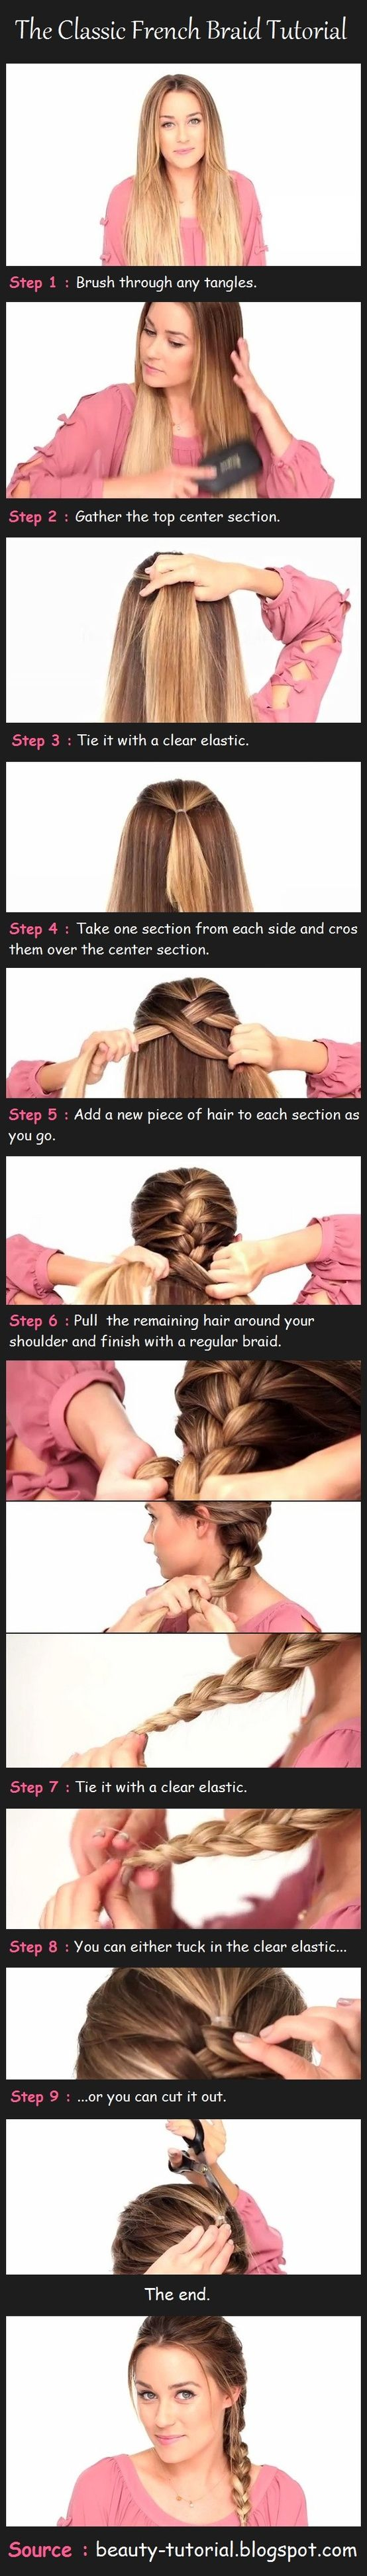 The Classic French-Braid Step-By-Step Pictorial